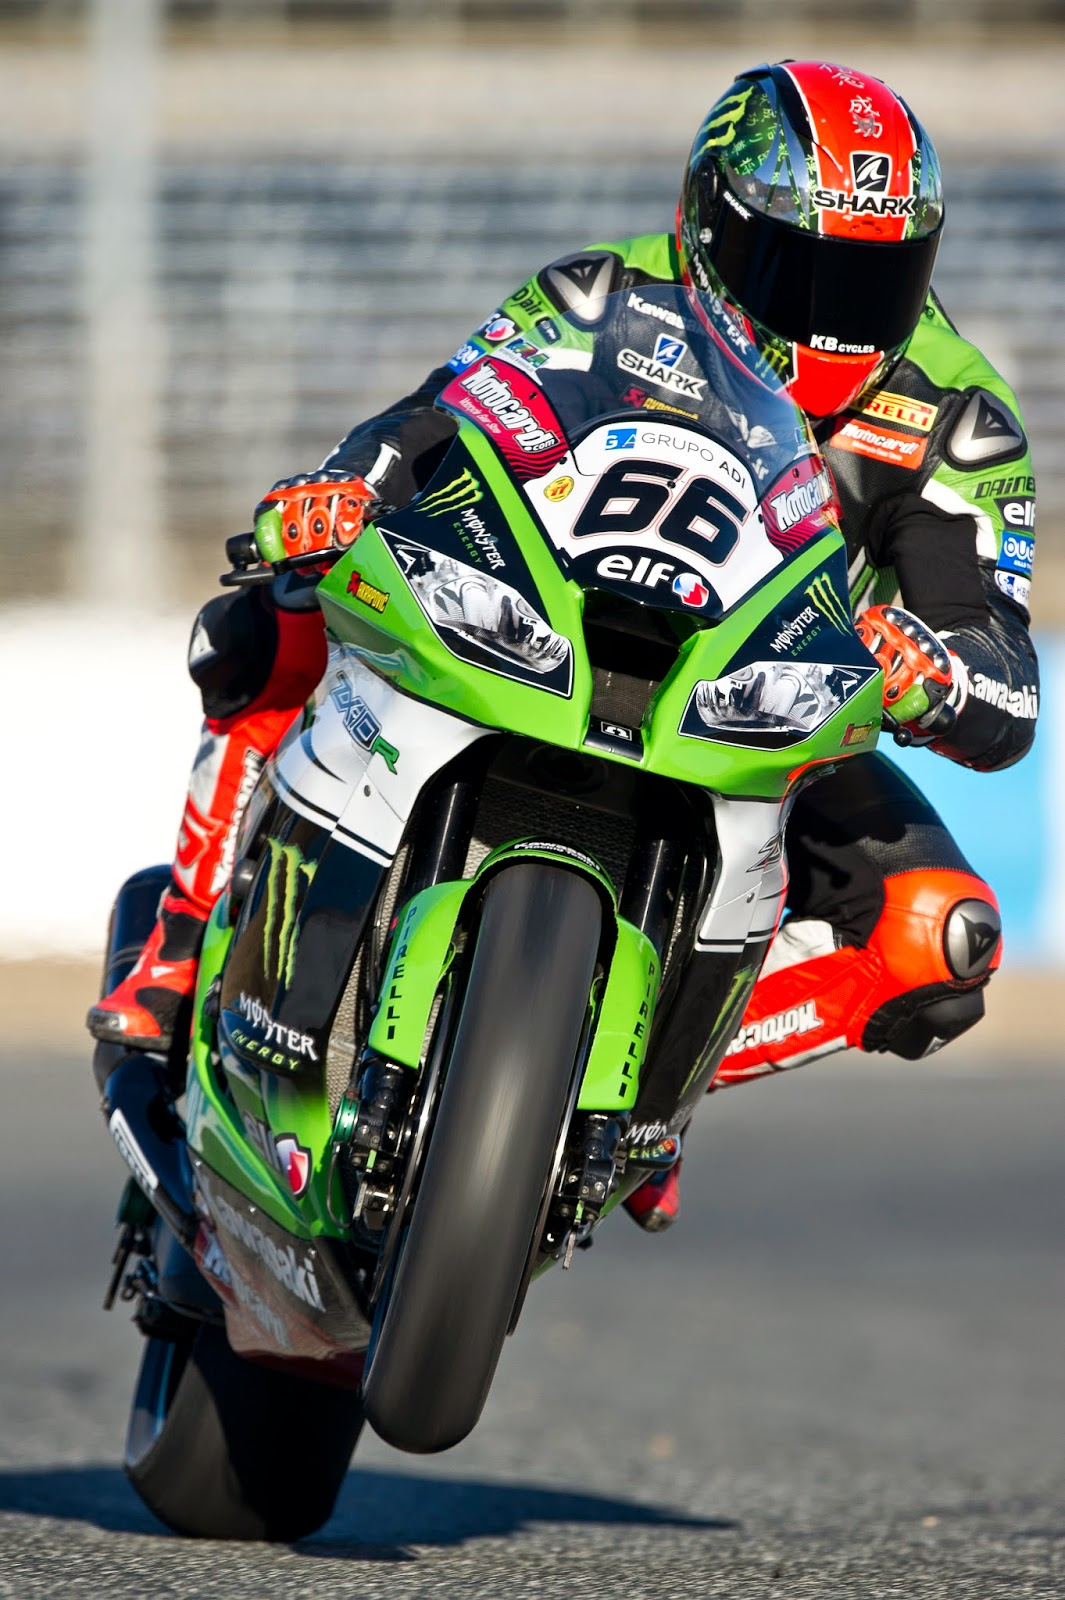 Racing Caf 232 Kawasaki Zx 10r Kawasaki Racing Team Wsbk 2015